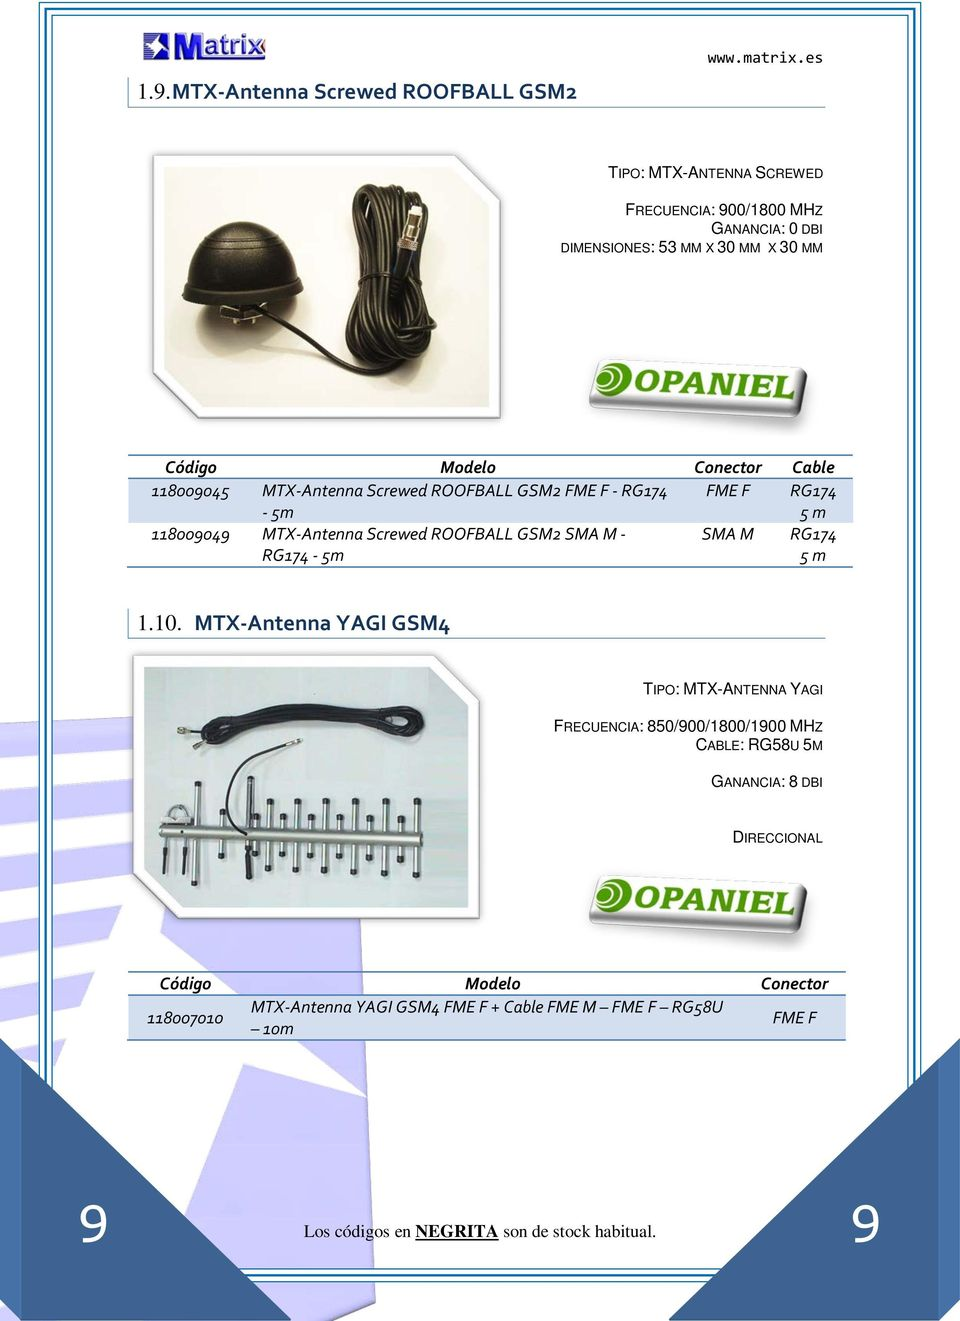 MTX-Antenna Screwed ROOFBALL GSM2 FME F - - 5m FME F 5 m 118009049 MTX-Antenna Screwed ROOFBALL GSM2 SMA M - - 5m SMA M 5 m 1.